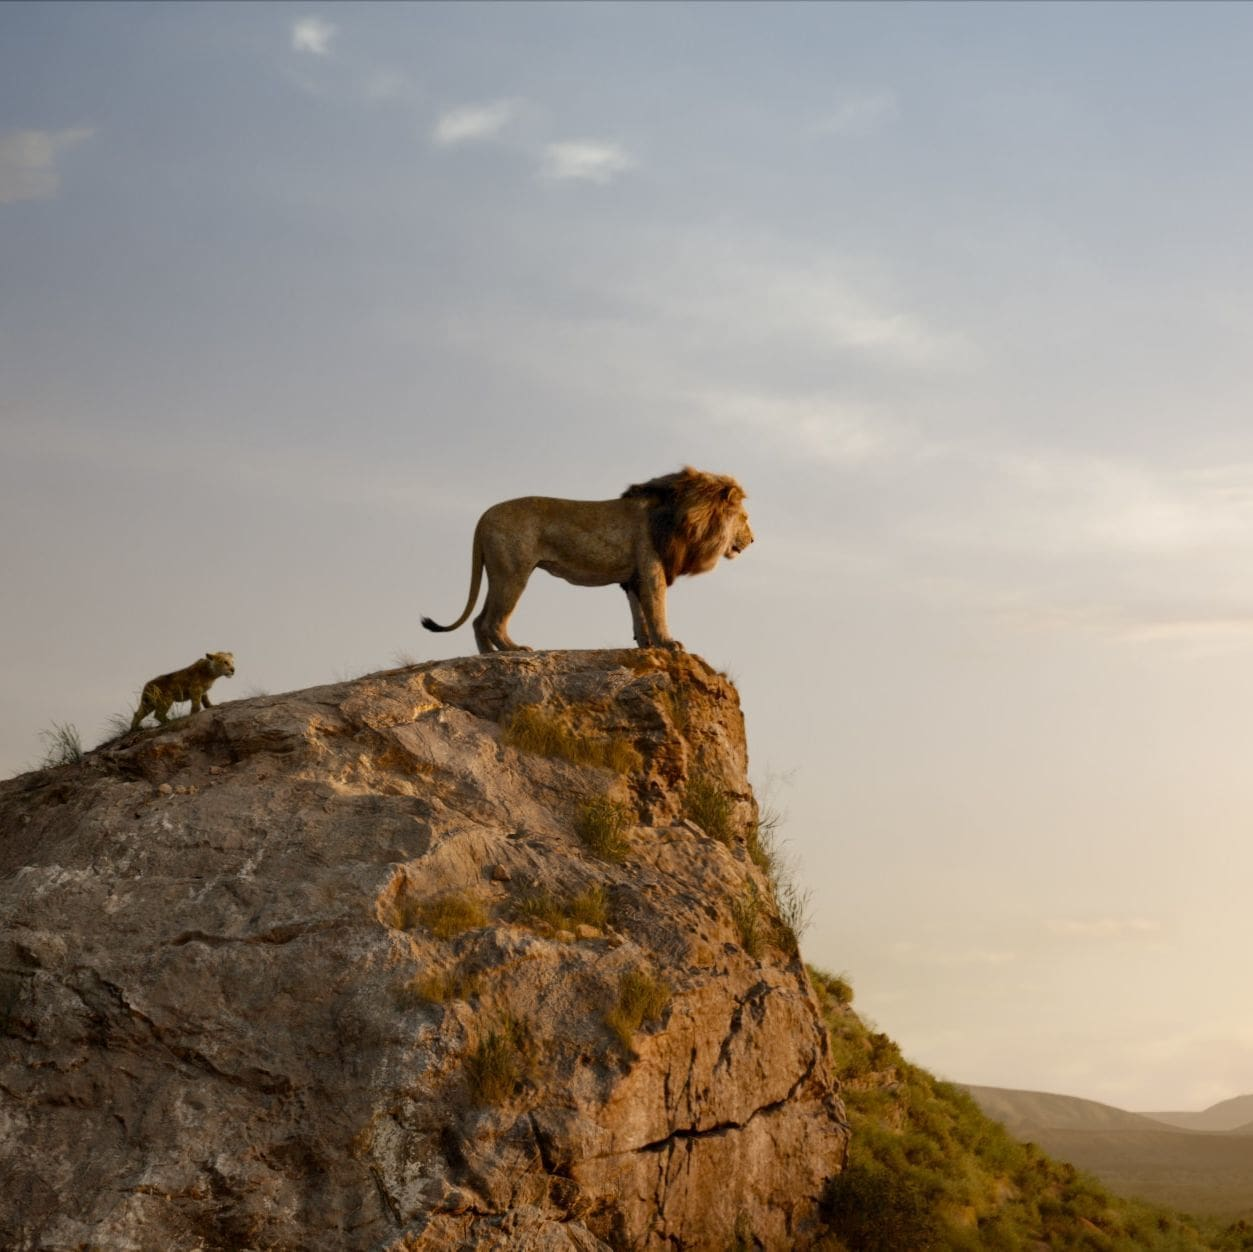 Inside the Making of The Lion King With Director Jon Favreau